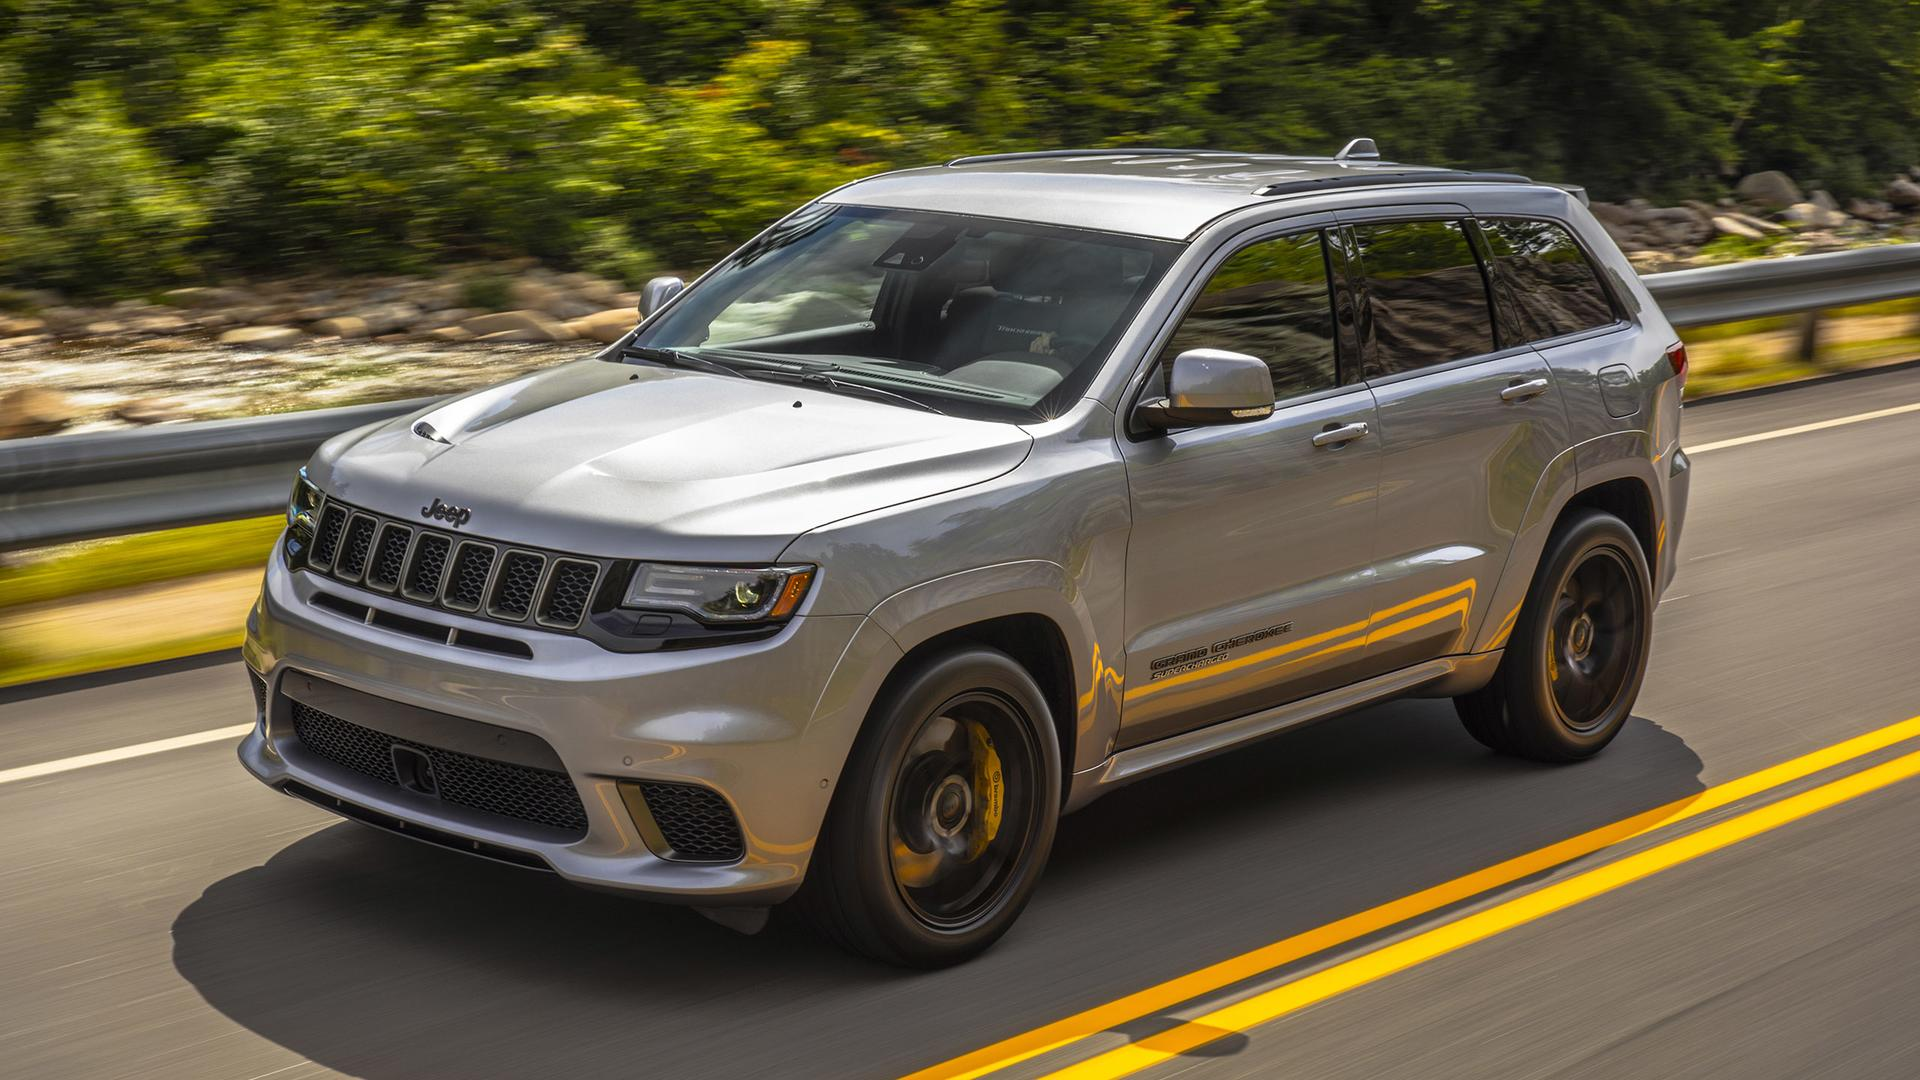 next generation jeep grand cherokee to use alfa romeo platformNext Generation Jeep Grand Cherokee #5